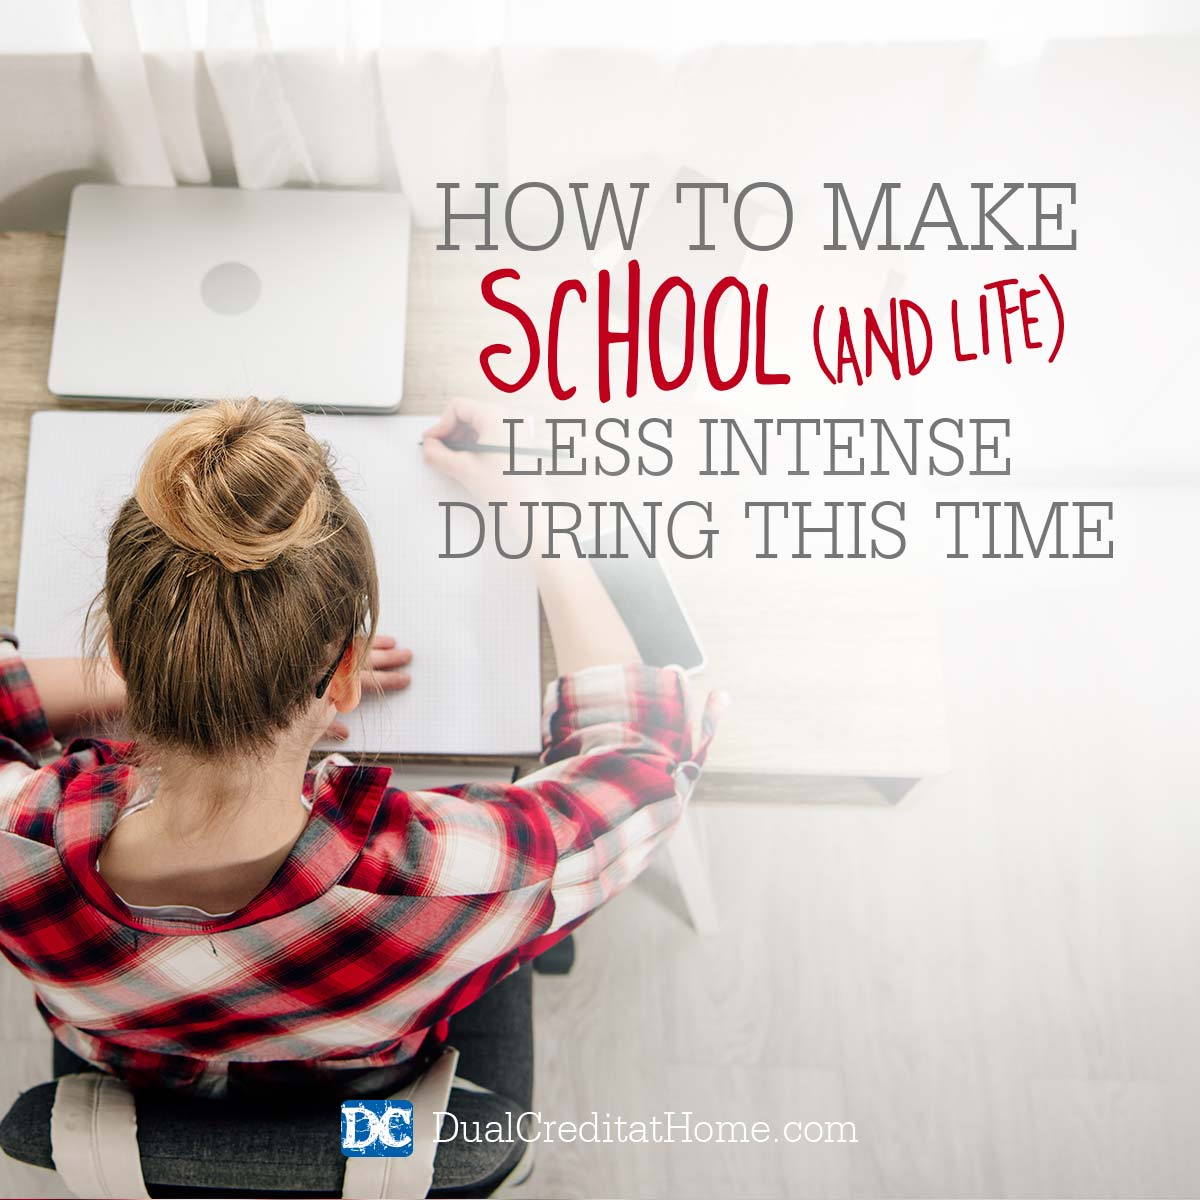 How to Make School (and Life) a Little Less Intense During This Time